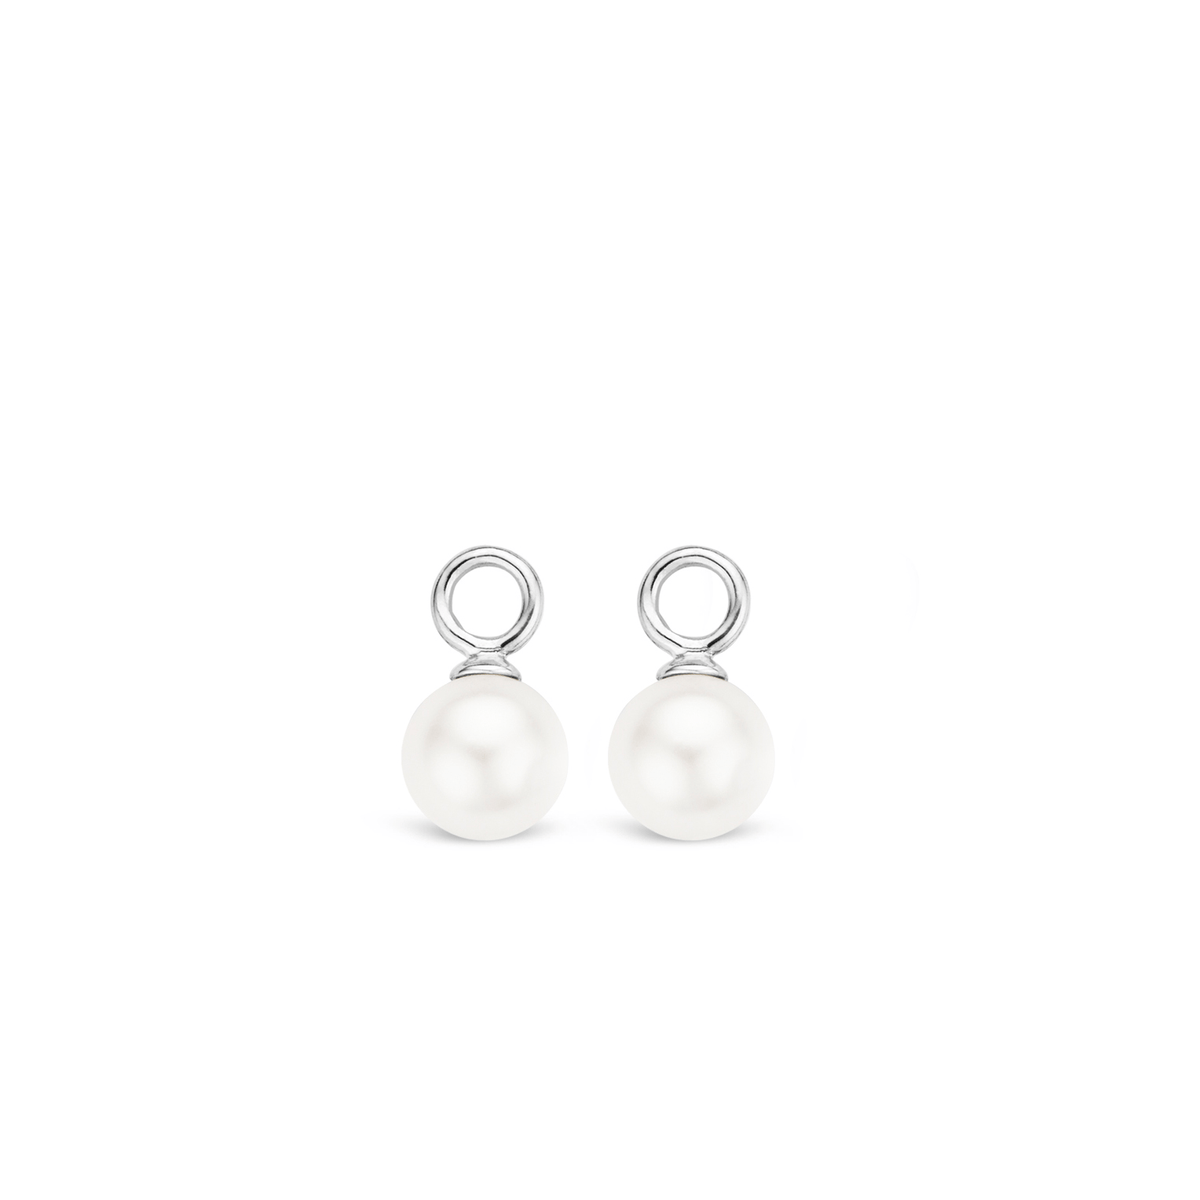 TI SENTO - Milano Ear Charms 9003PW